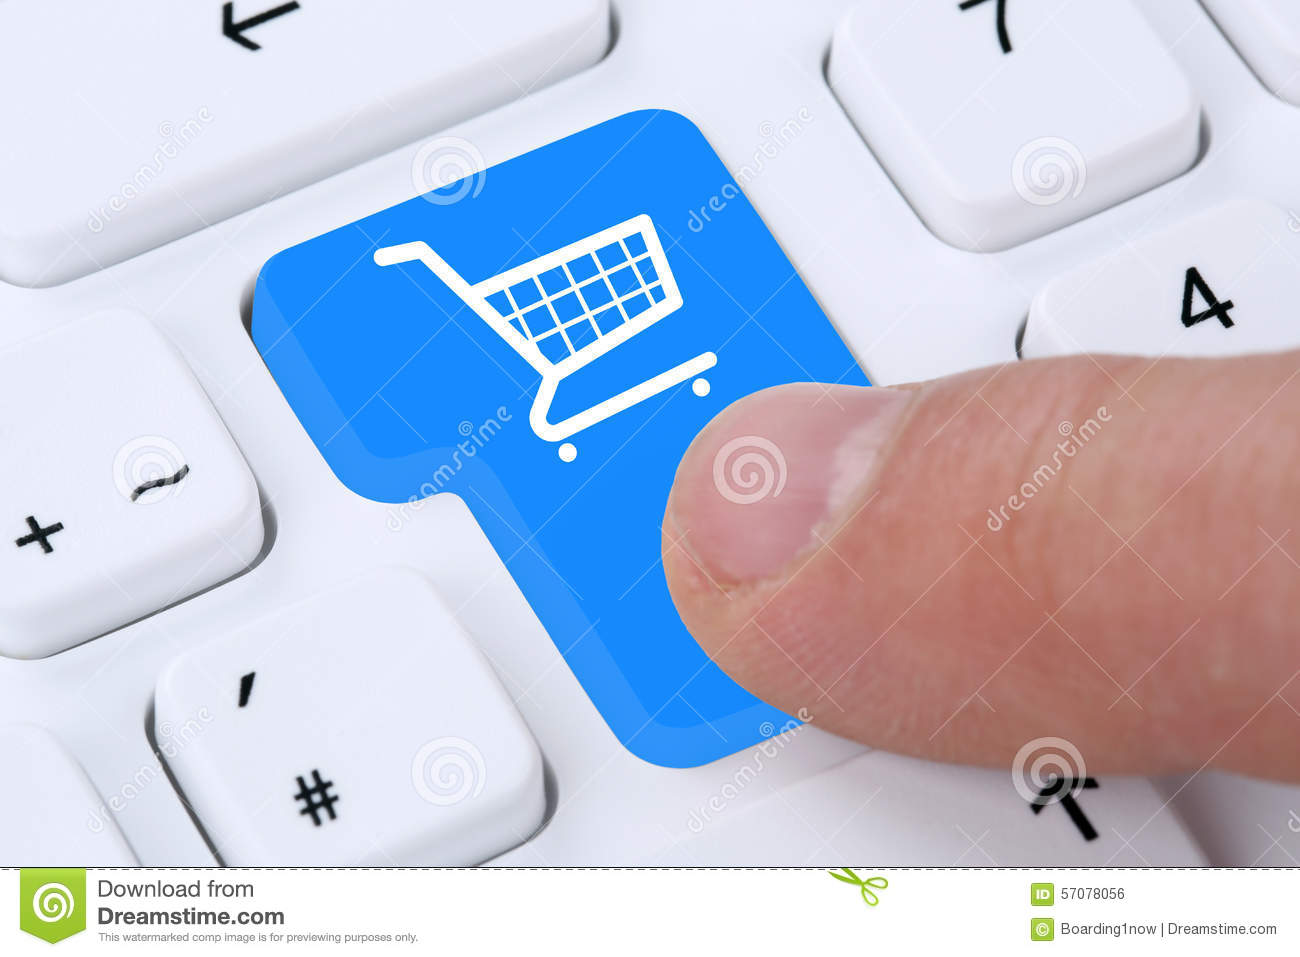 online-shopping-buying-order-internet-shop-concept-cart-57078056.jpg